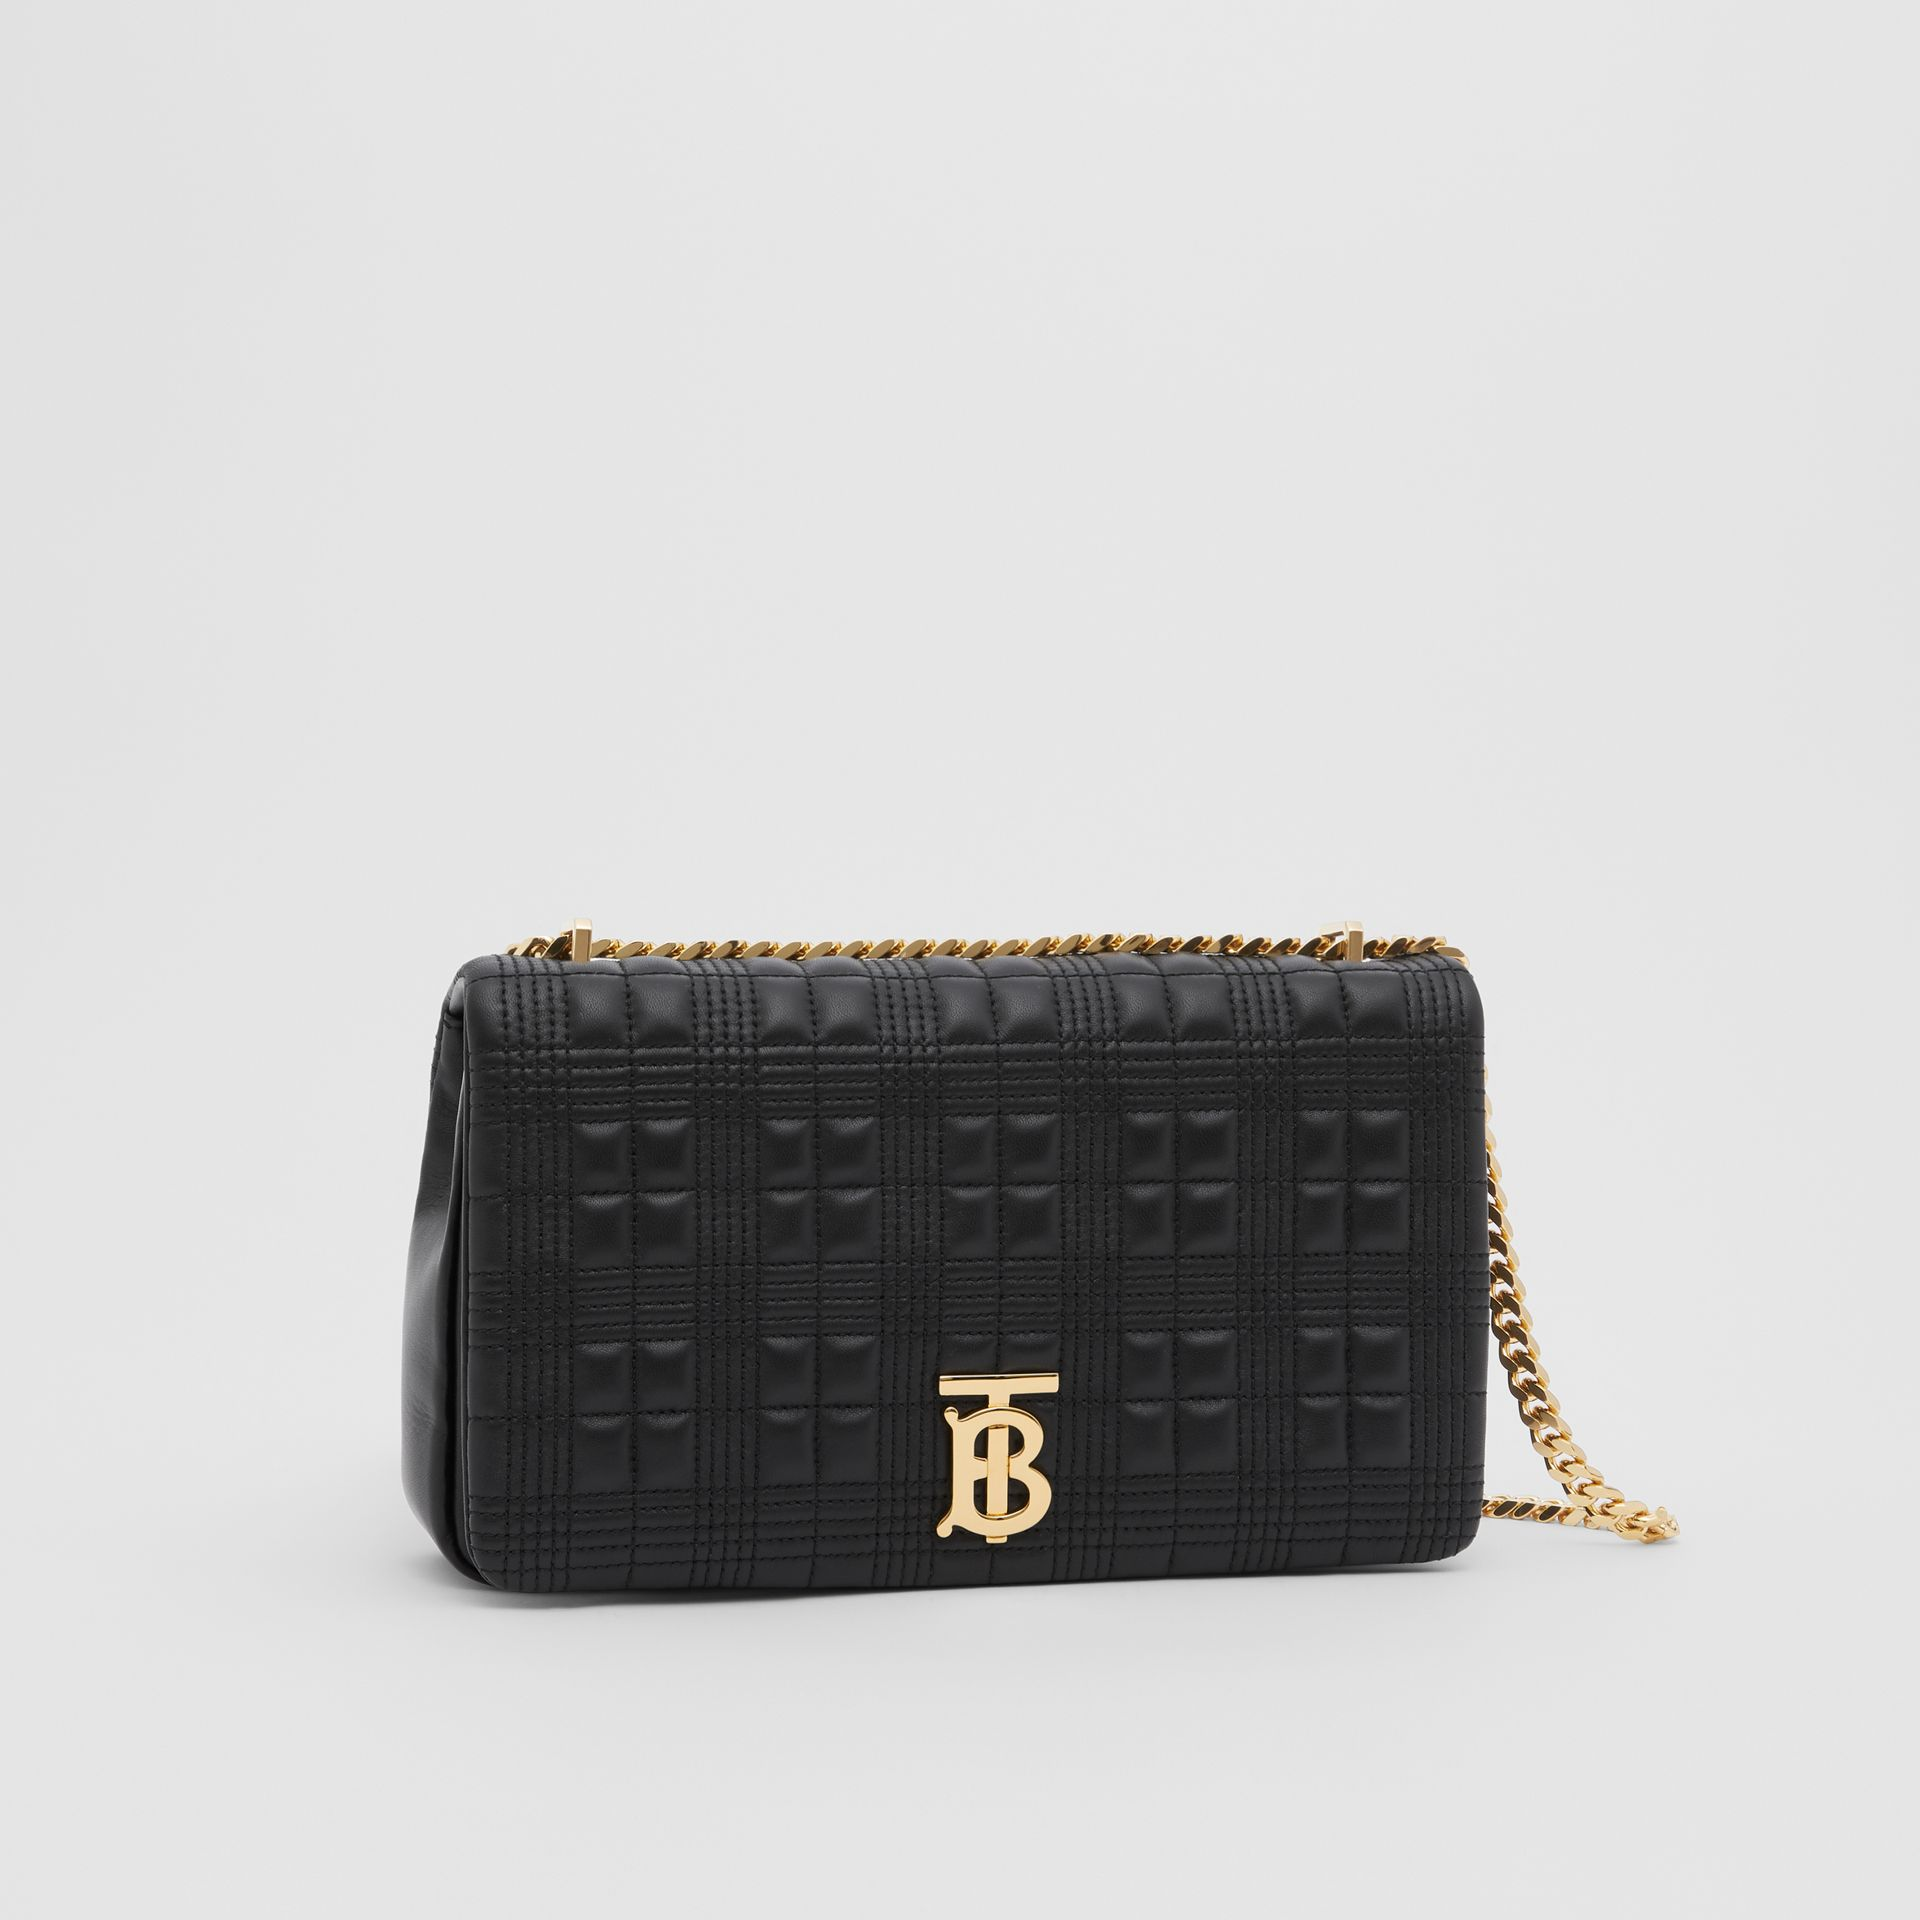 Medium Quilted Lambskin Lola Bag in Black/light Gold - Women | Burberry - gallery image 6